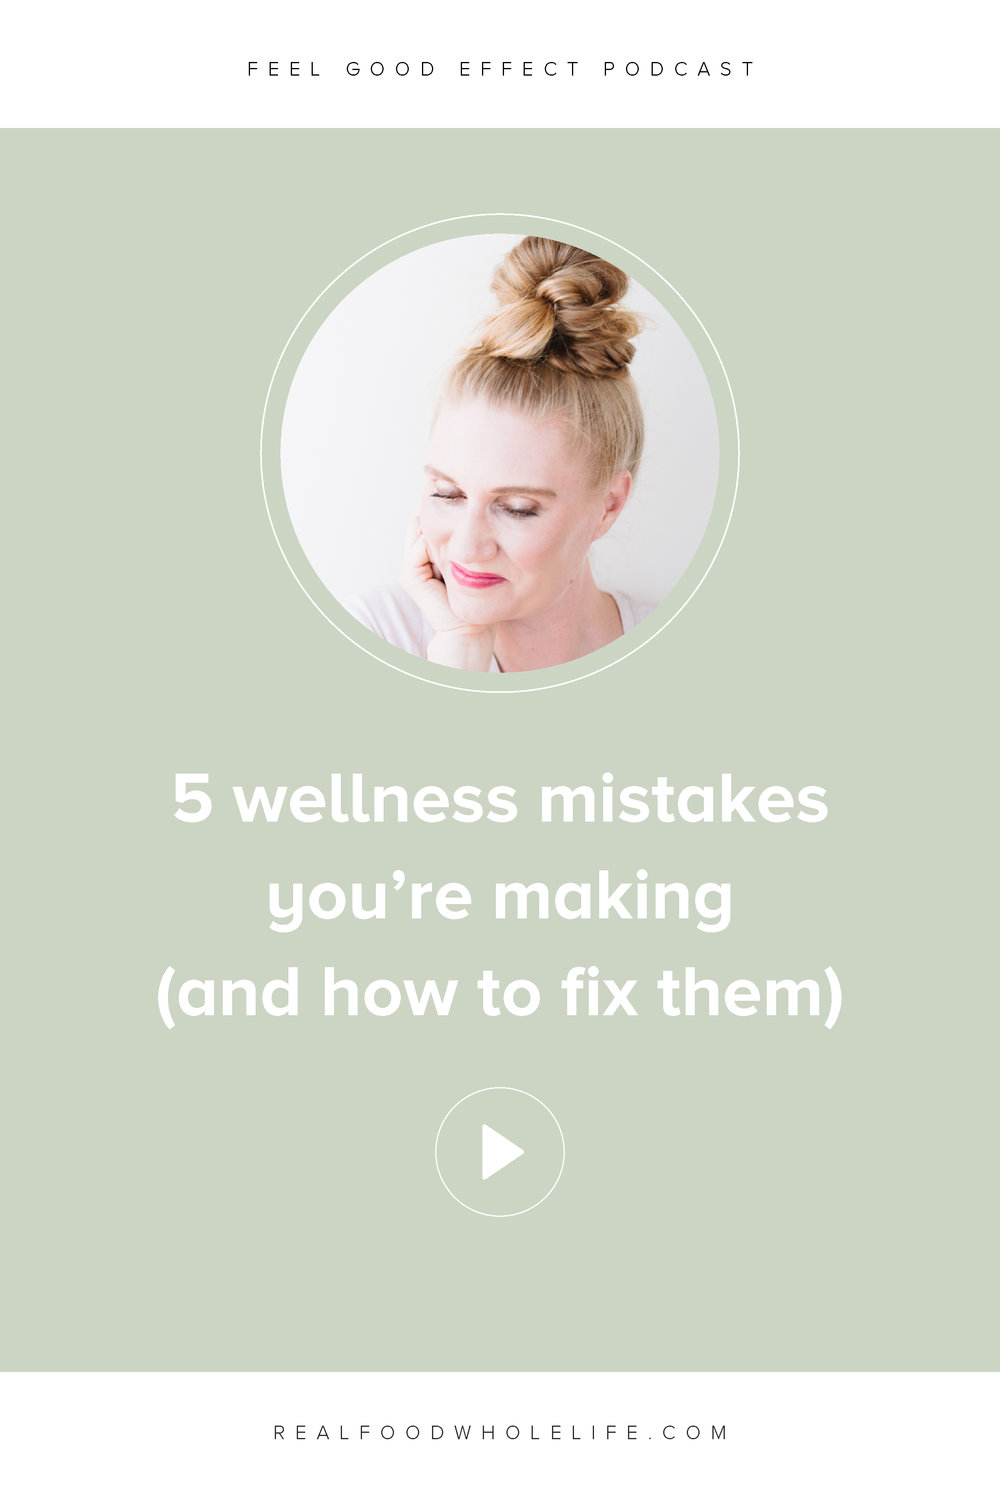 Find out the 5 biggest wellness mistakes you're making, and to listen to this episode of the Feel Good Effect podcast to learn about how to fix them. #feelgoodeffectpodcast #podcast #wellness #healthyandwellness #wellnesspodcast #healthpodcast #healthandwellnesspodcast #selfhelp #selfimprovement #healthylifestyle #healthyliving